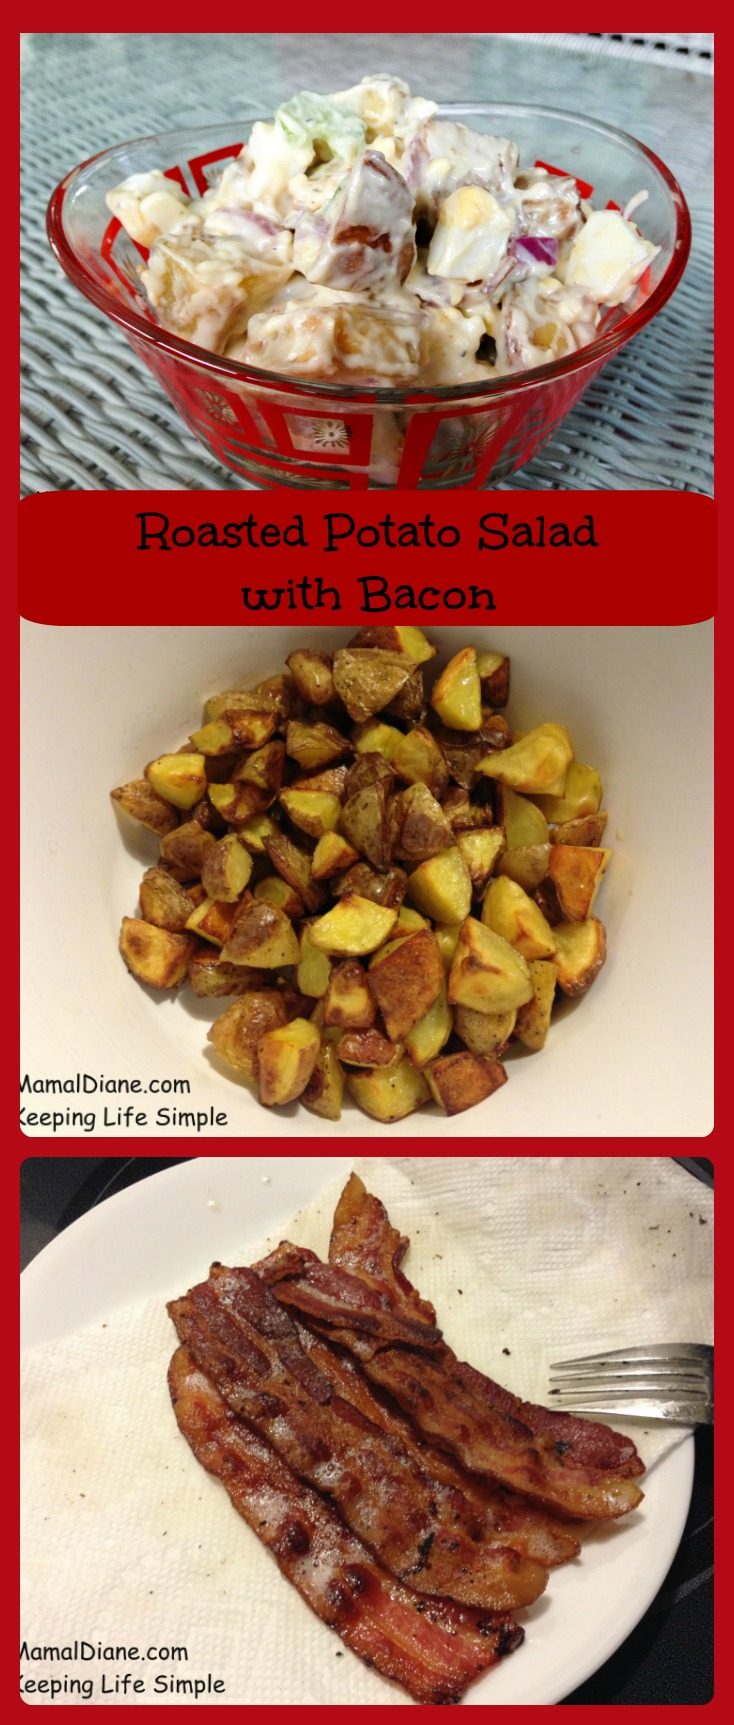 Roasted Potato Salad with Bacon collage